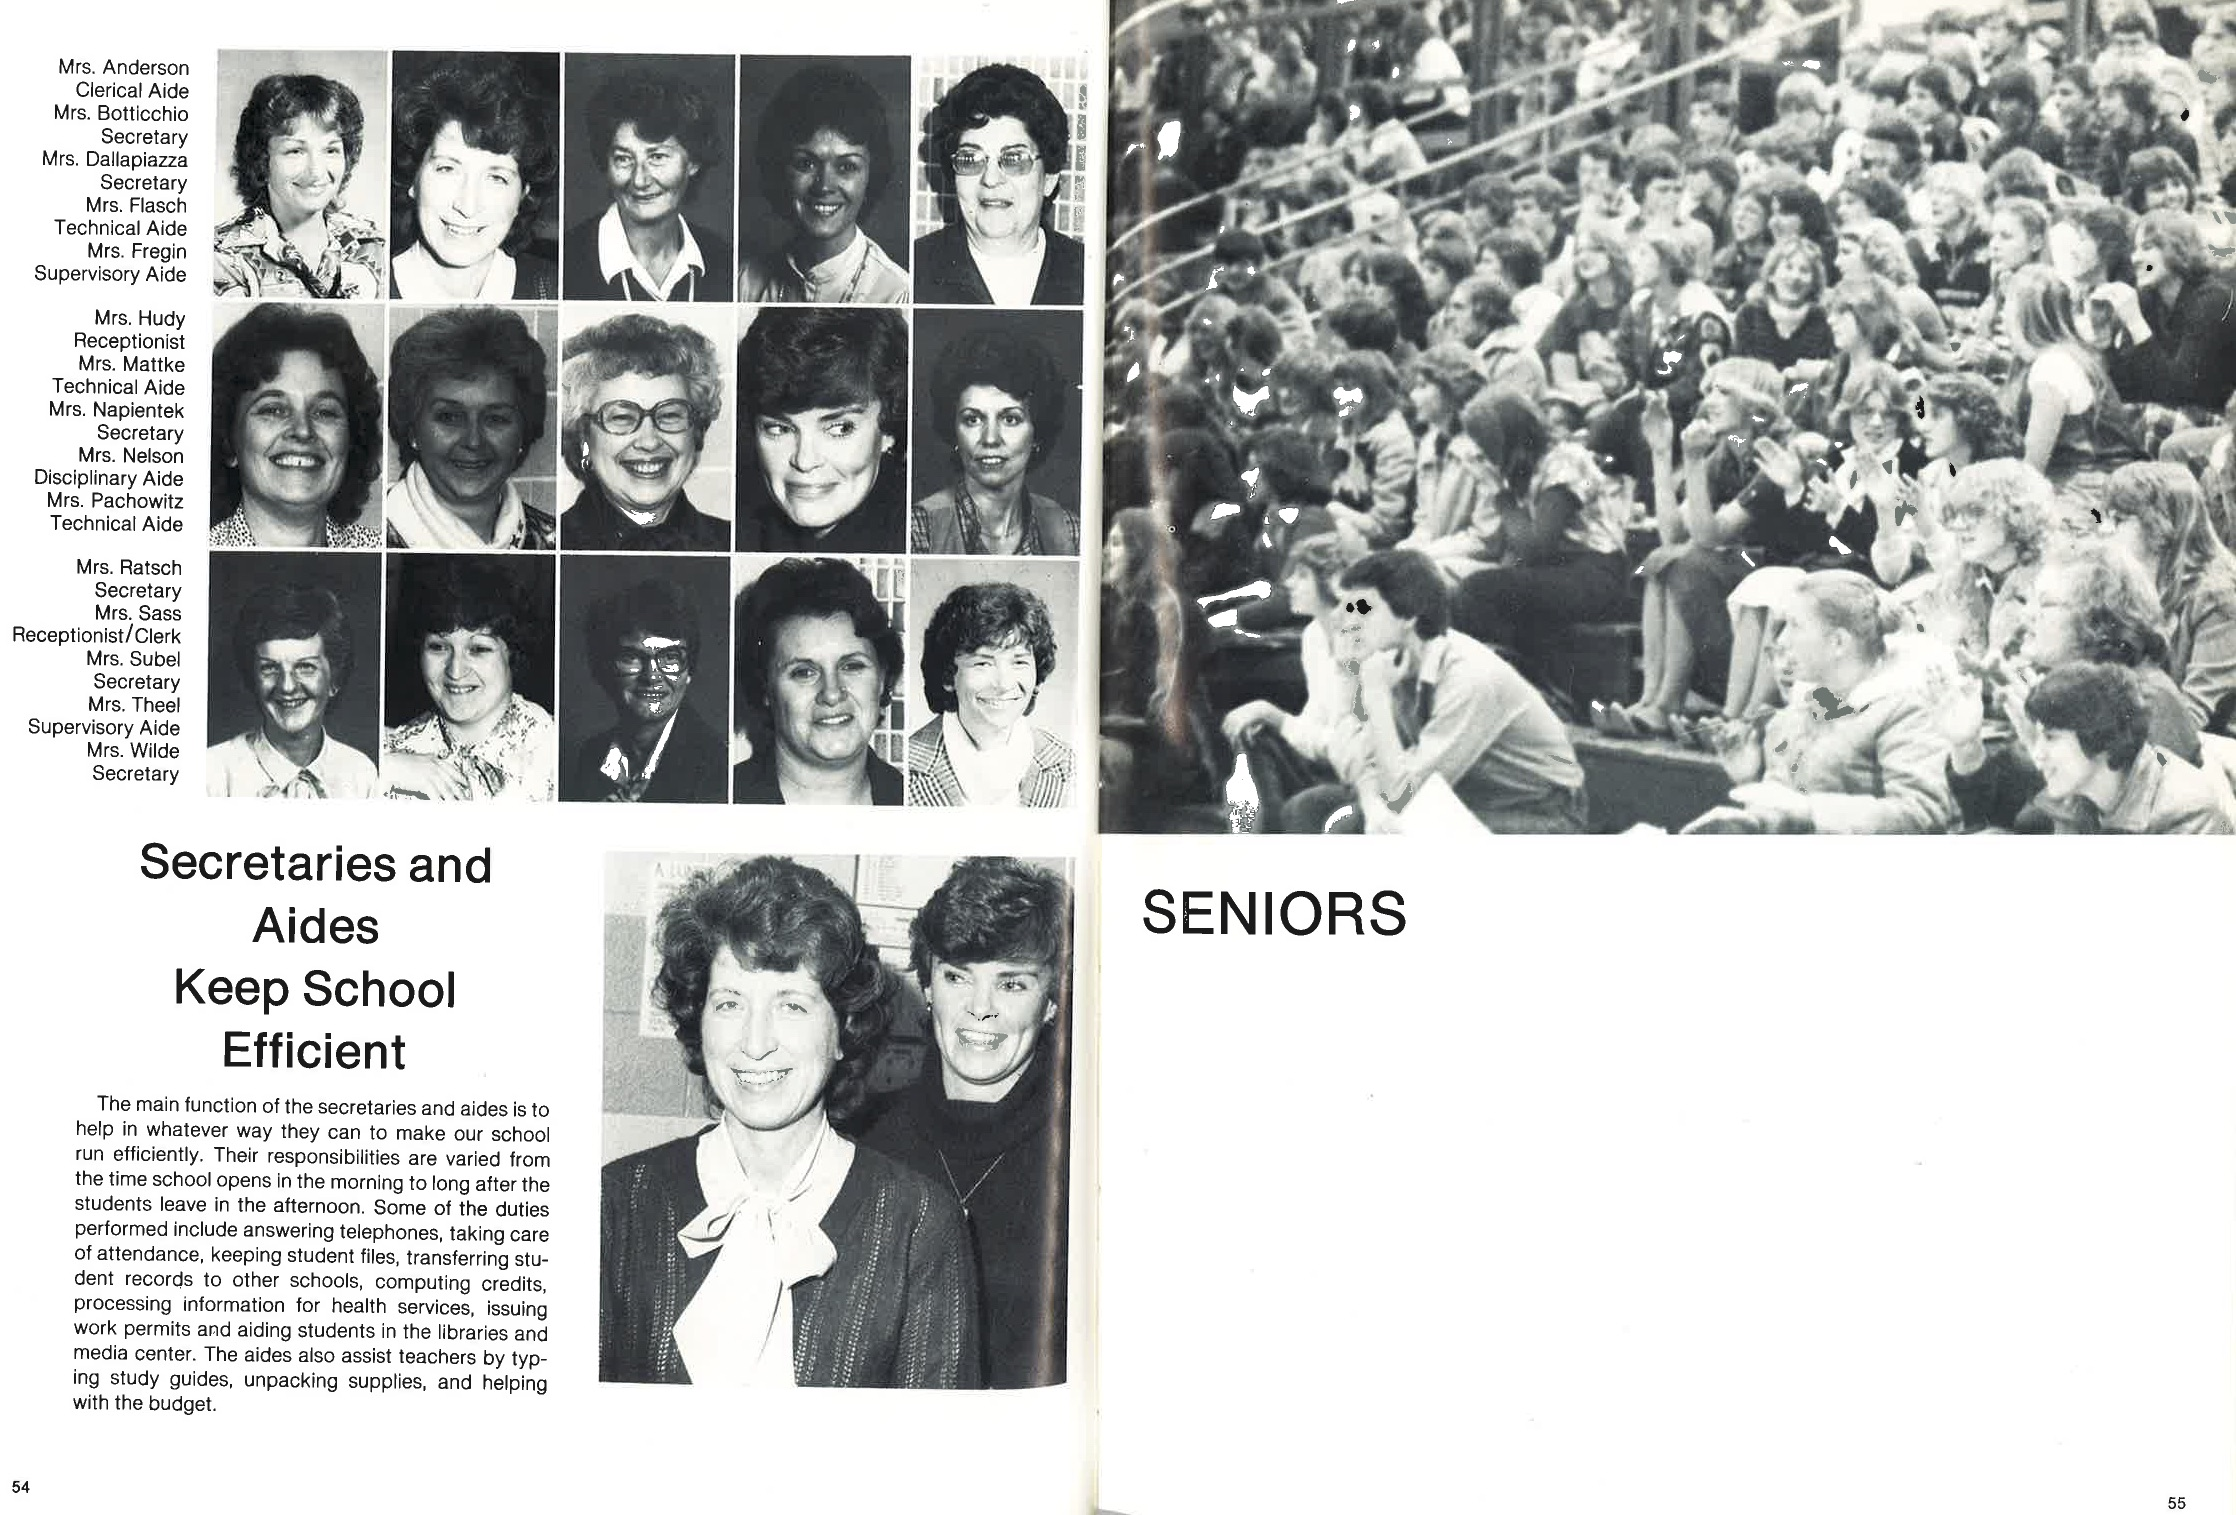 1981_Yearbook_54.jpg